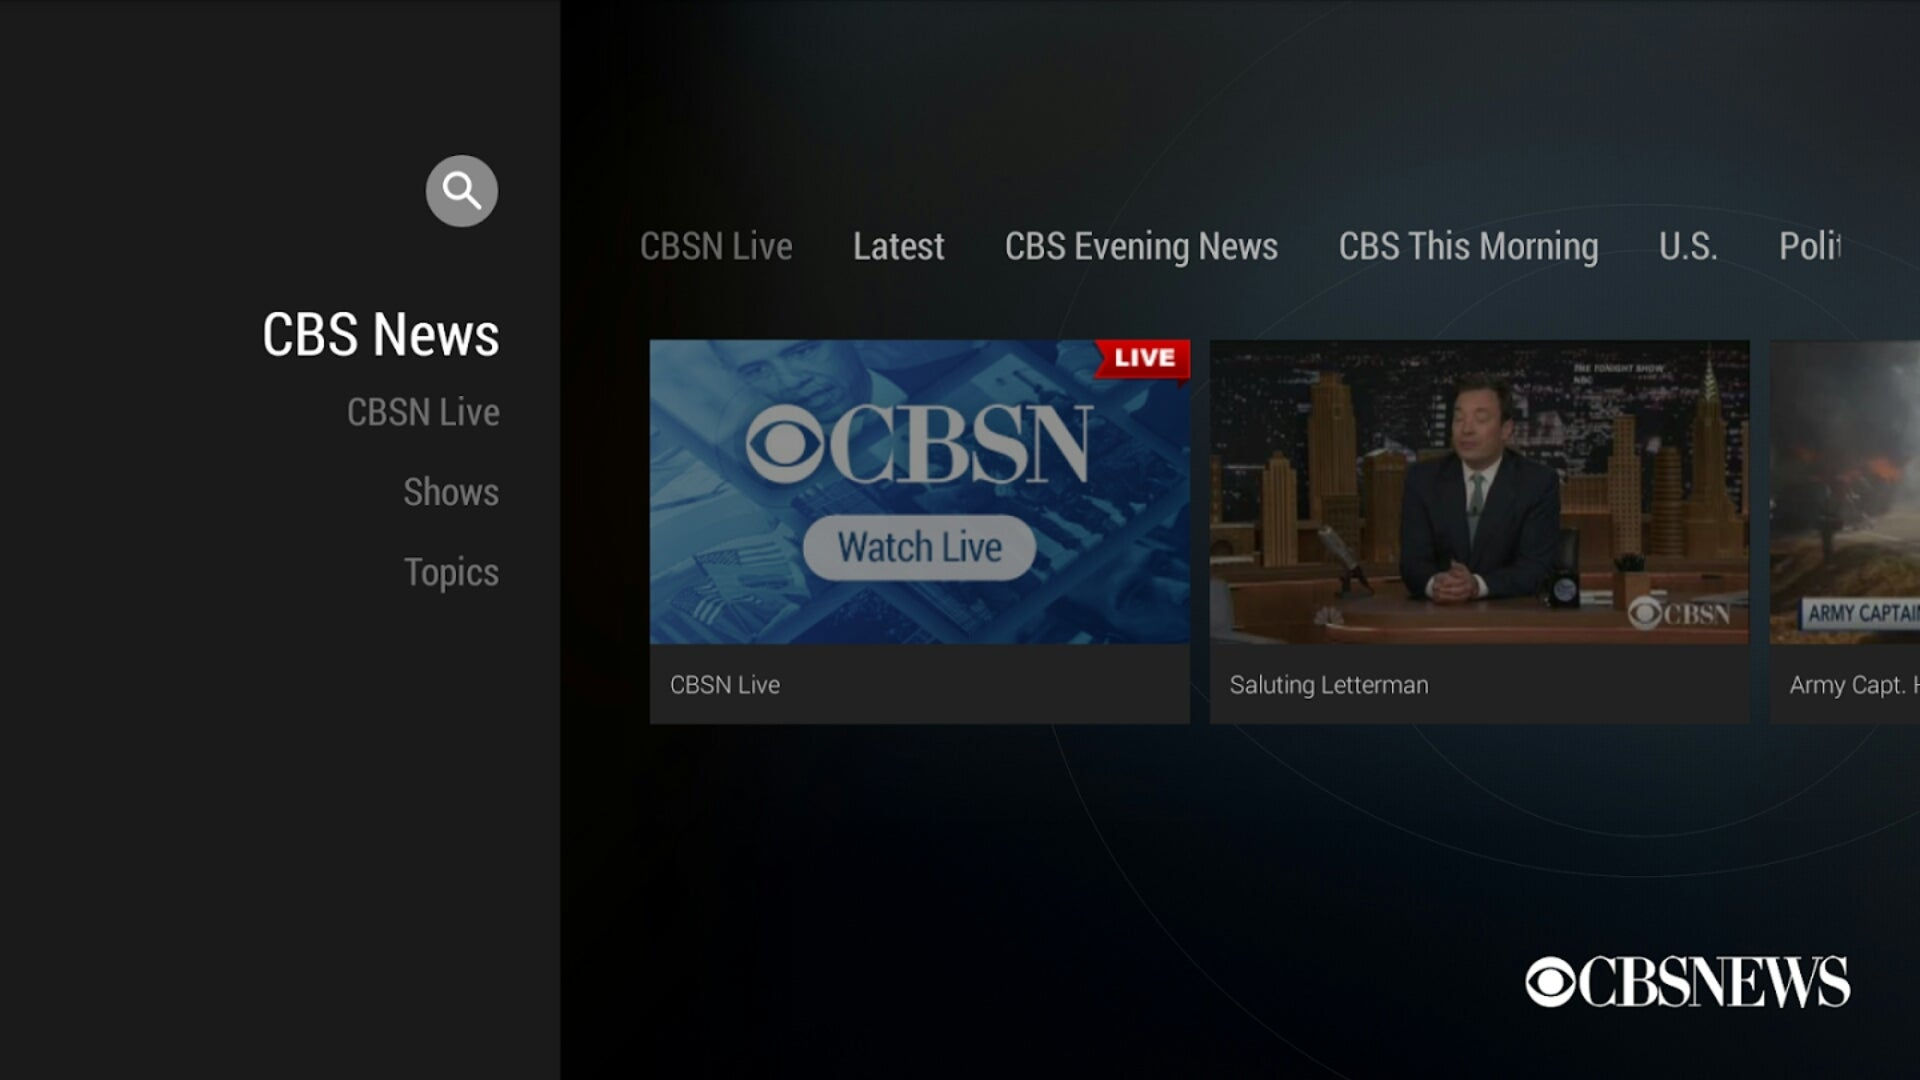 cbs news offers a live round the clock video feed with anchored coverage and it tends to focus on actual stories instead of talking heads